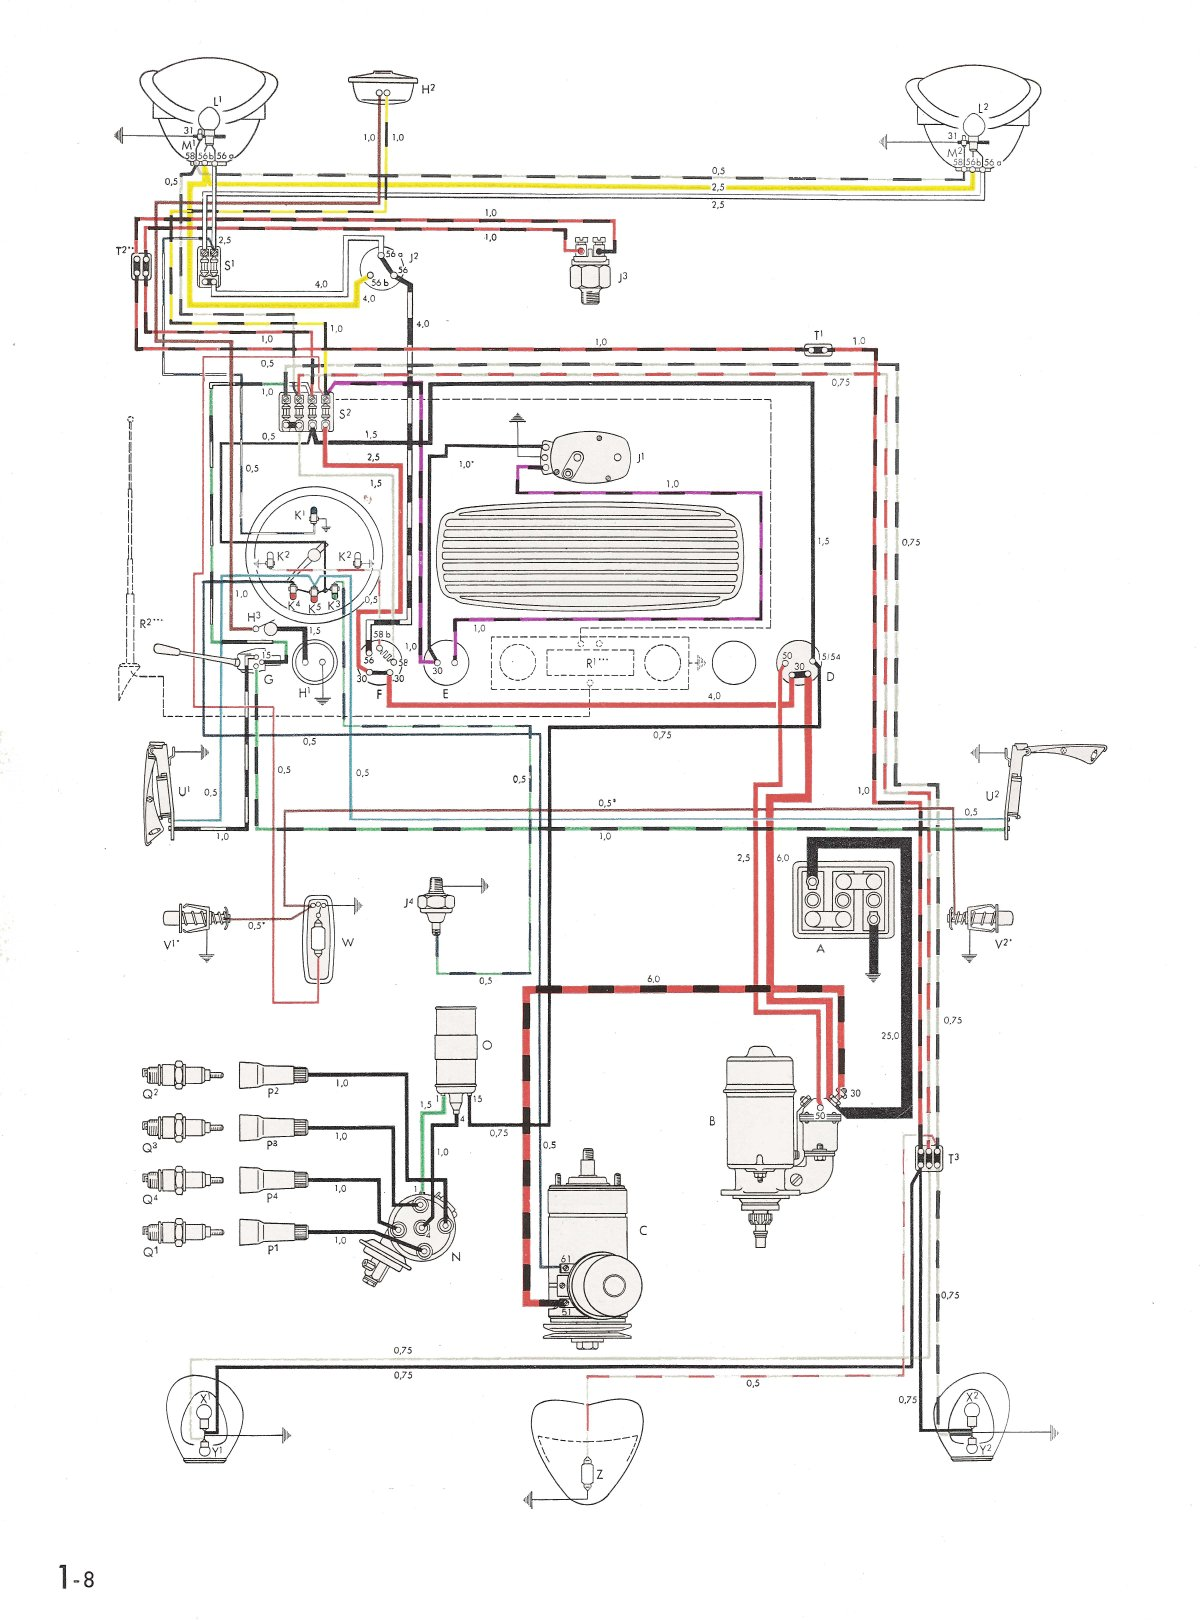 bug54 thesamba com type 1 wiring diagrams 1973 vw wiring diagram at nearapp.co